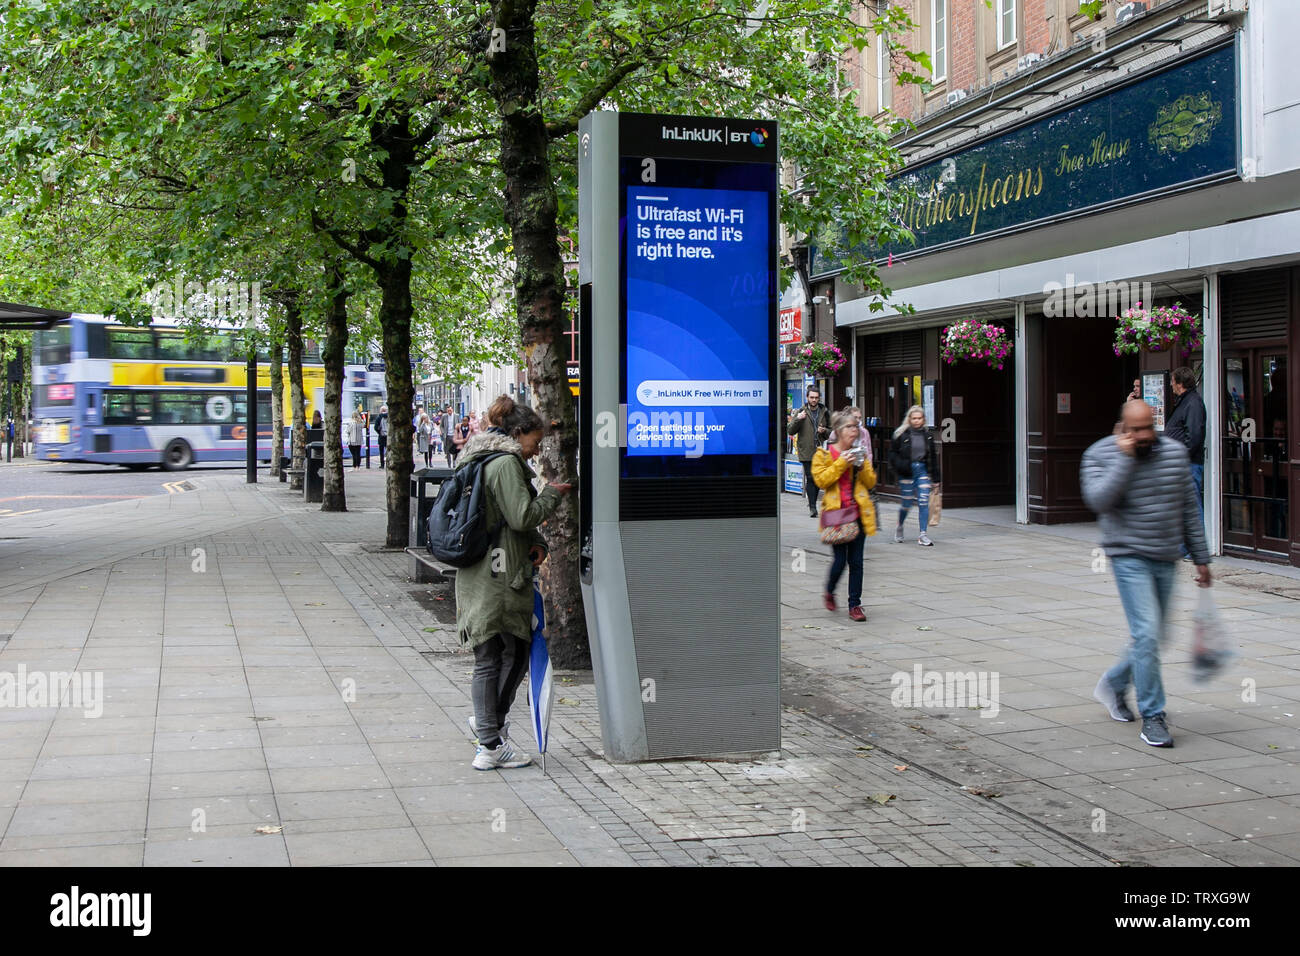 LinkUK is an infrastructure project in Manchester, United Kingdom with free Wi-Fi service. LinkUK kiosks, called Links, was rolled out in the London borough of Camden in 2017 - Stock Image